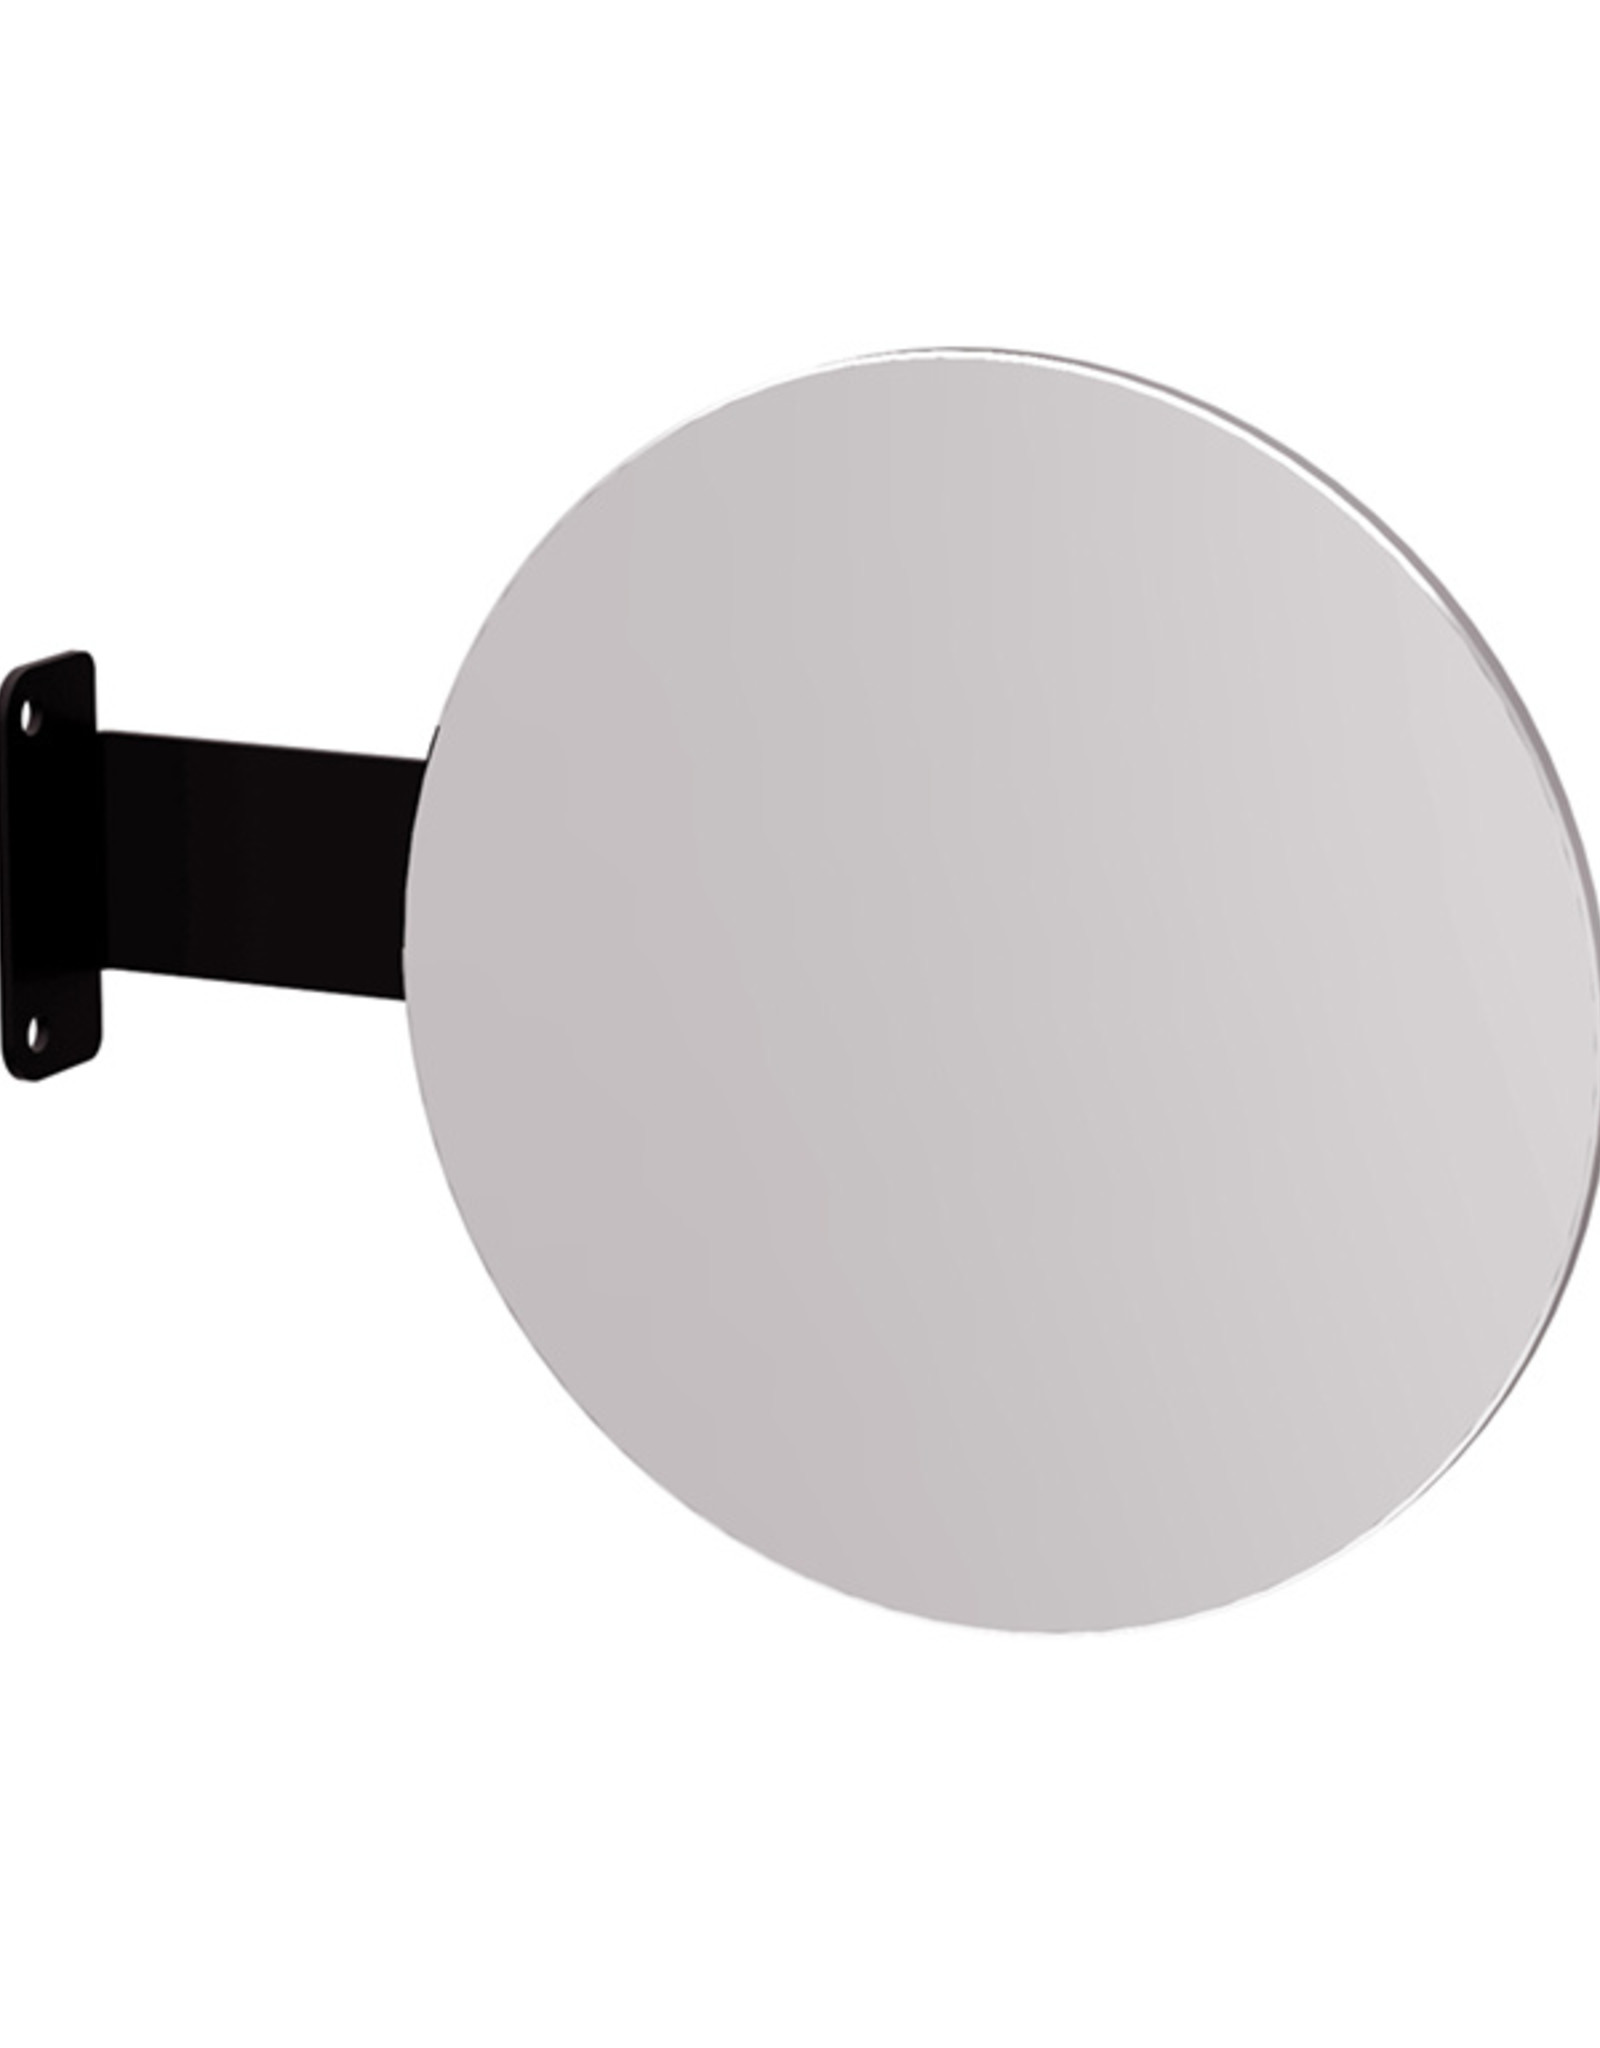 Gus* Modern Branch Side Mirror